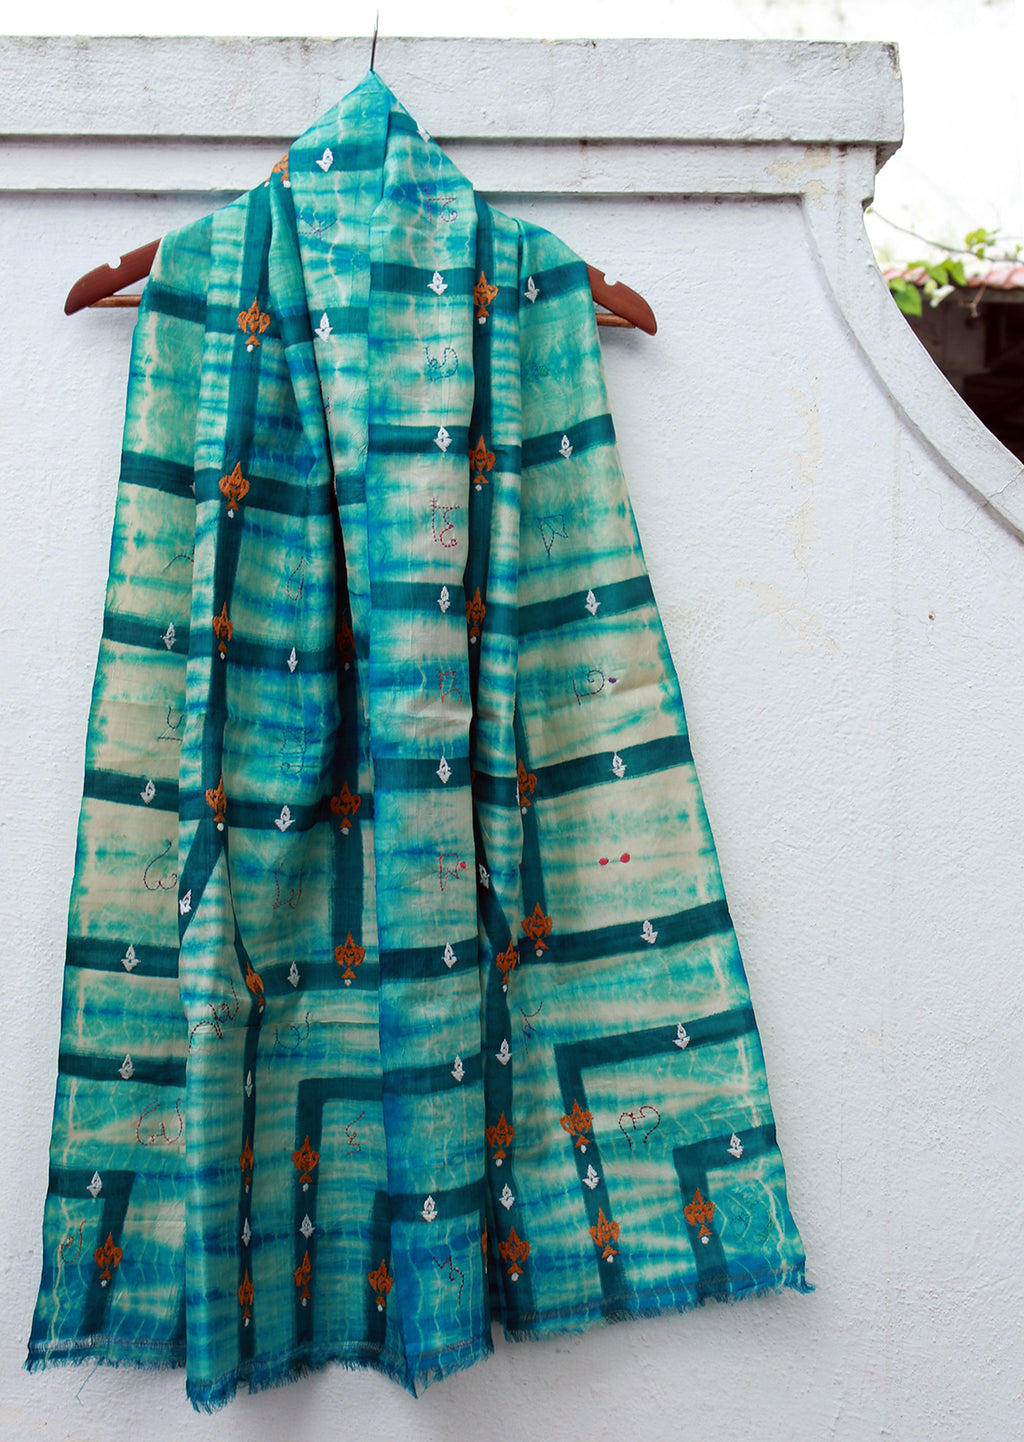 Sea Green Handloom Pure Silk Stole with Shibori Tie and Dye and Kantha Work